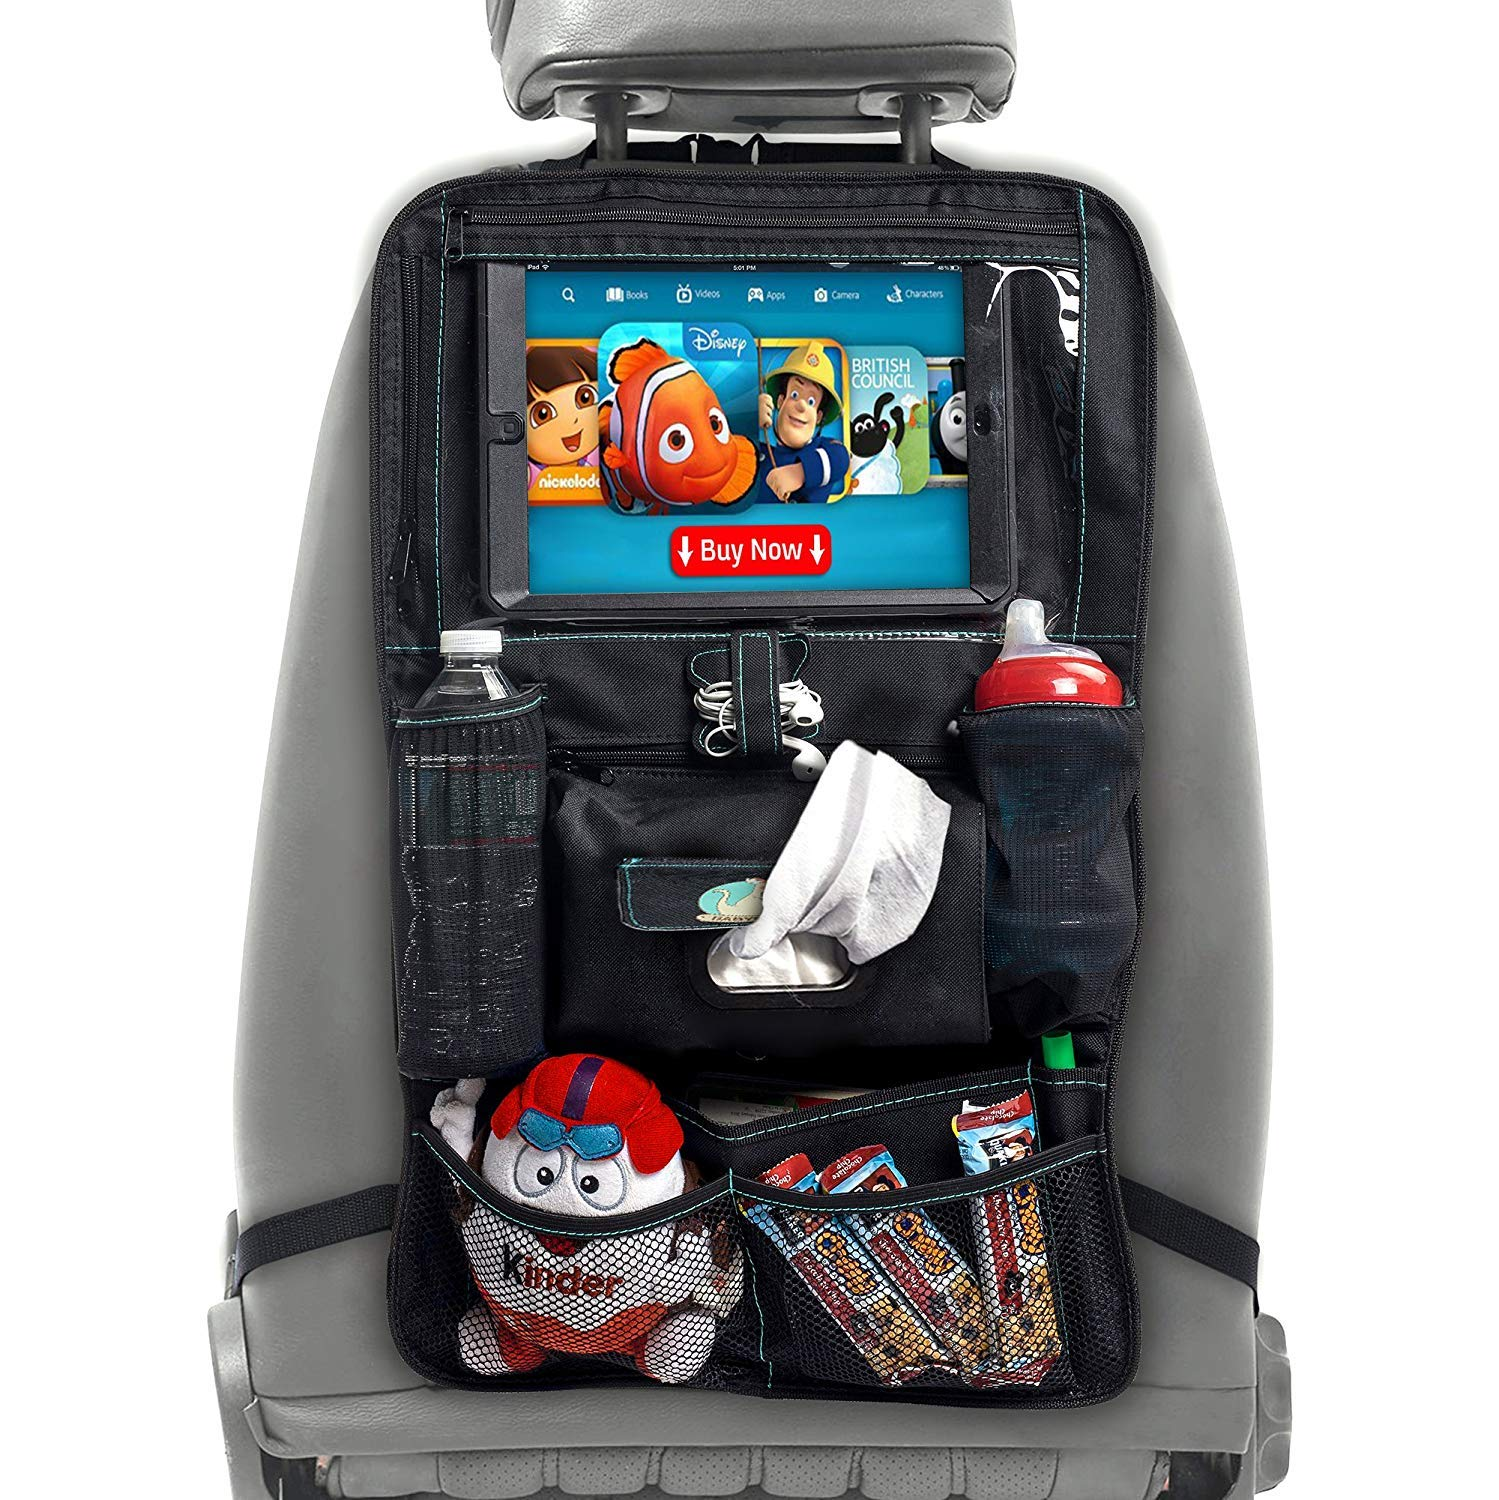 BABYSEATER Car Seat Organizer with Tablet Holder for Kids, XL by BABYSEATER